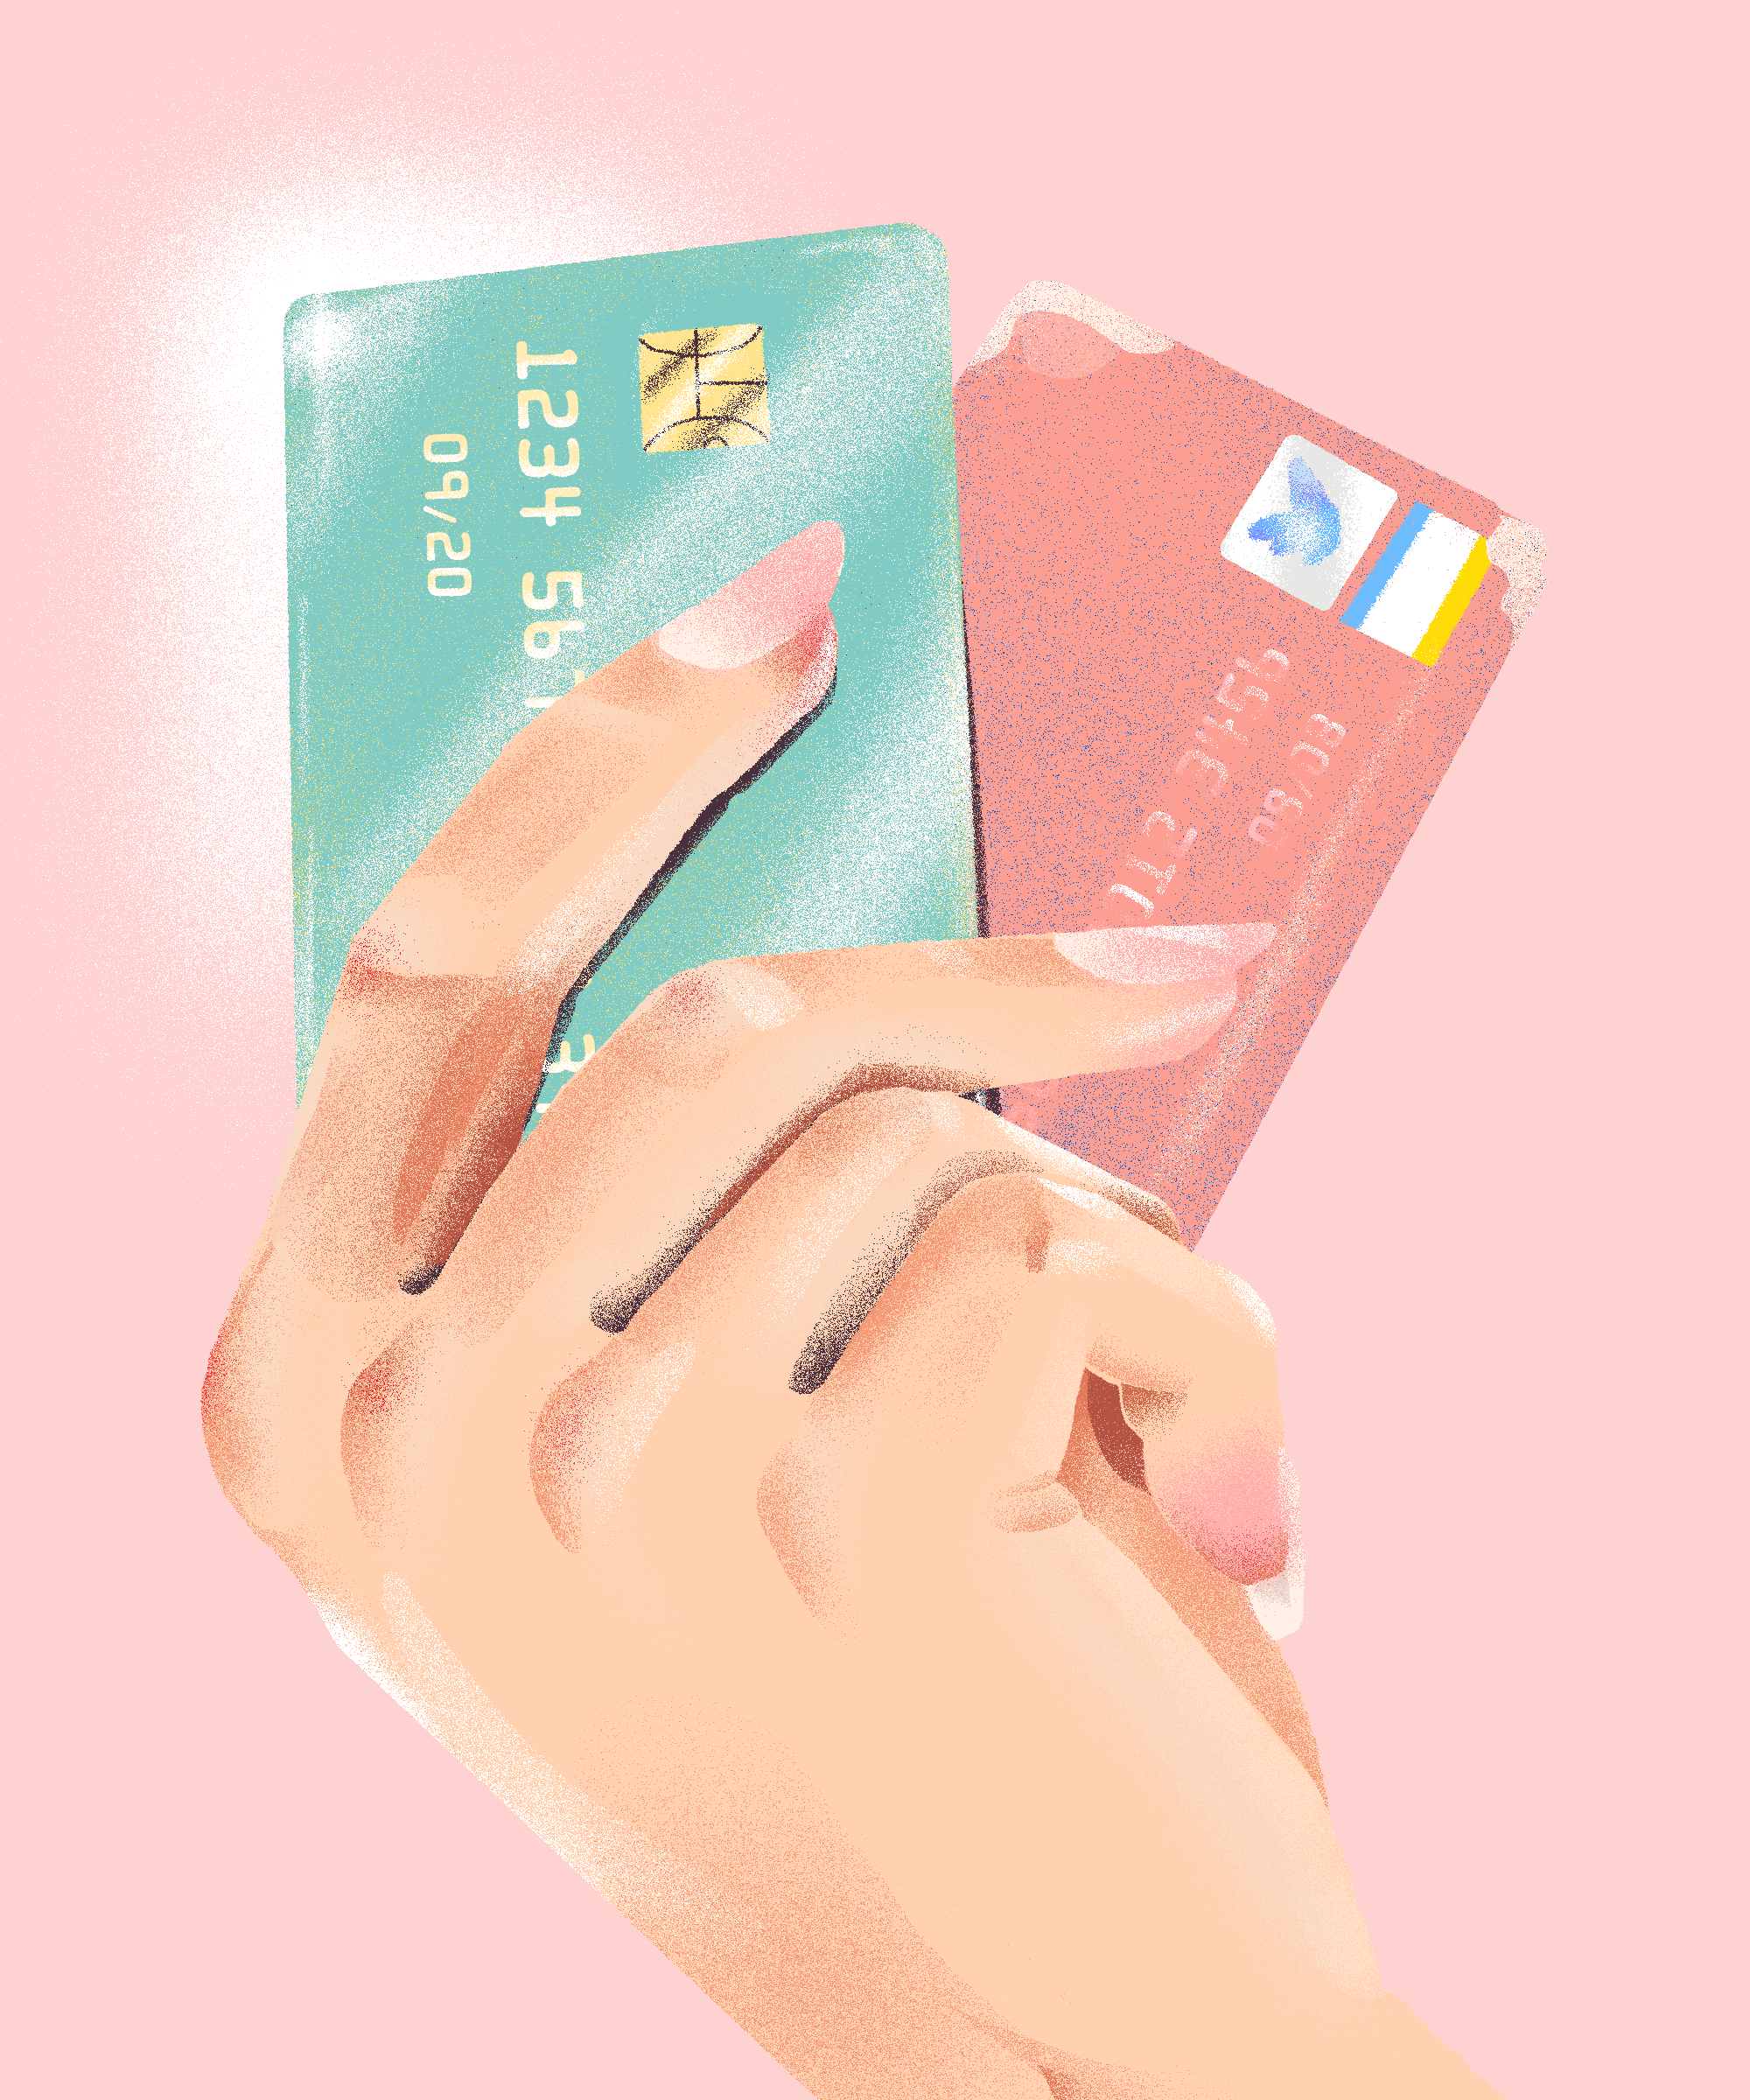 credit card illustration #creditcard How To Get Your First Credit Card+#refinery29 #credit card